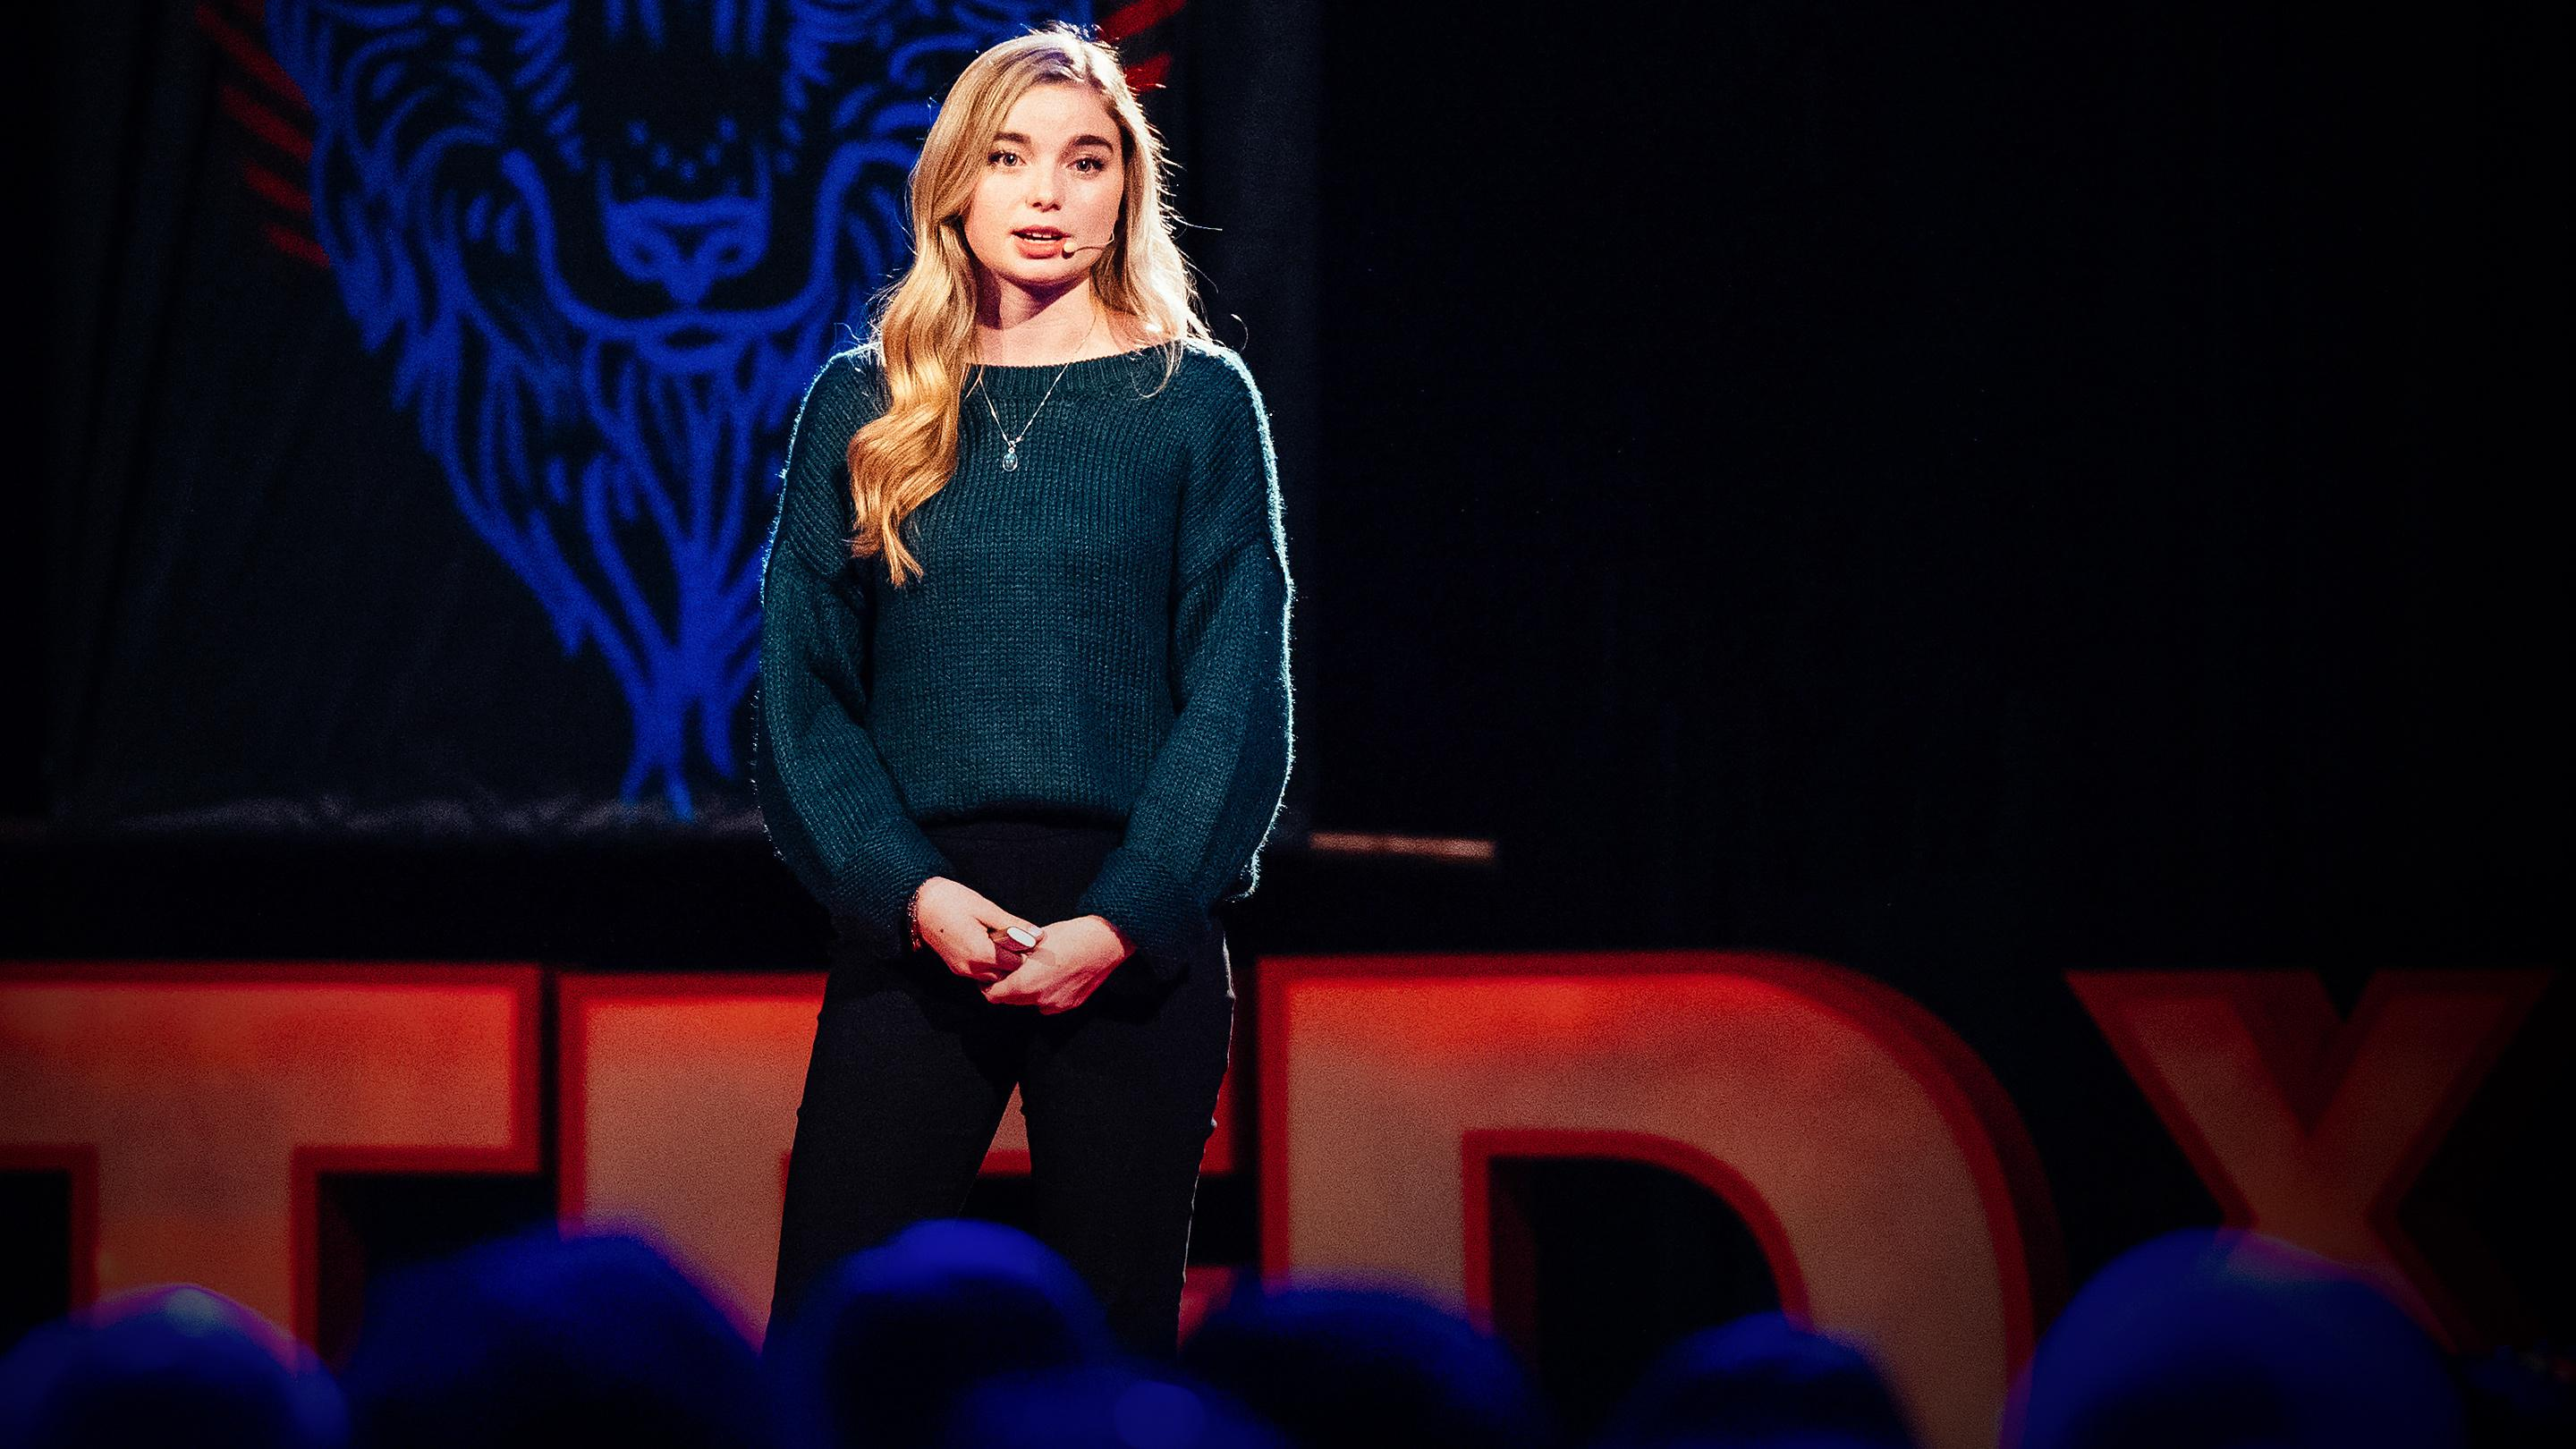 Why students should have mental health days | Hailey Hardcastle